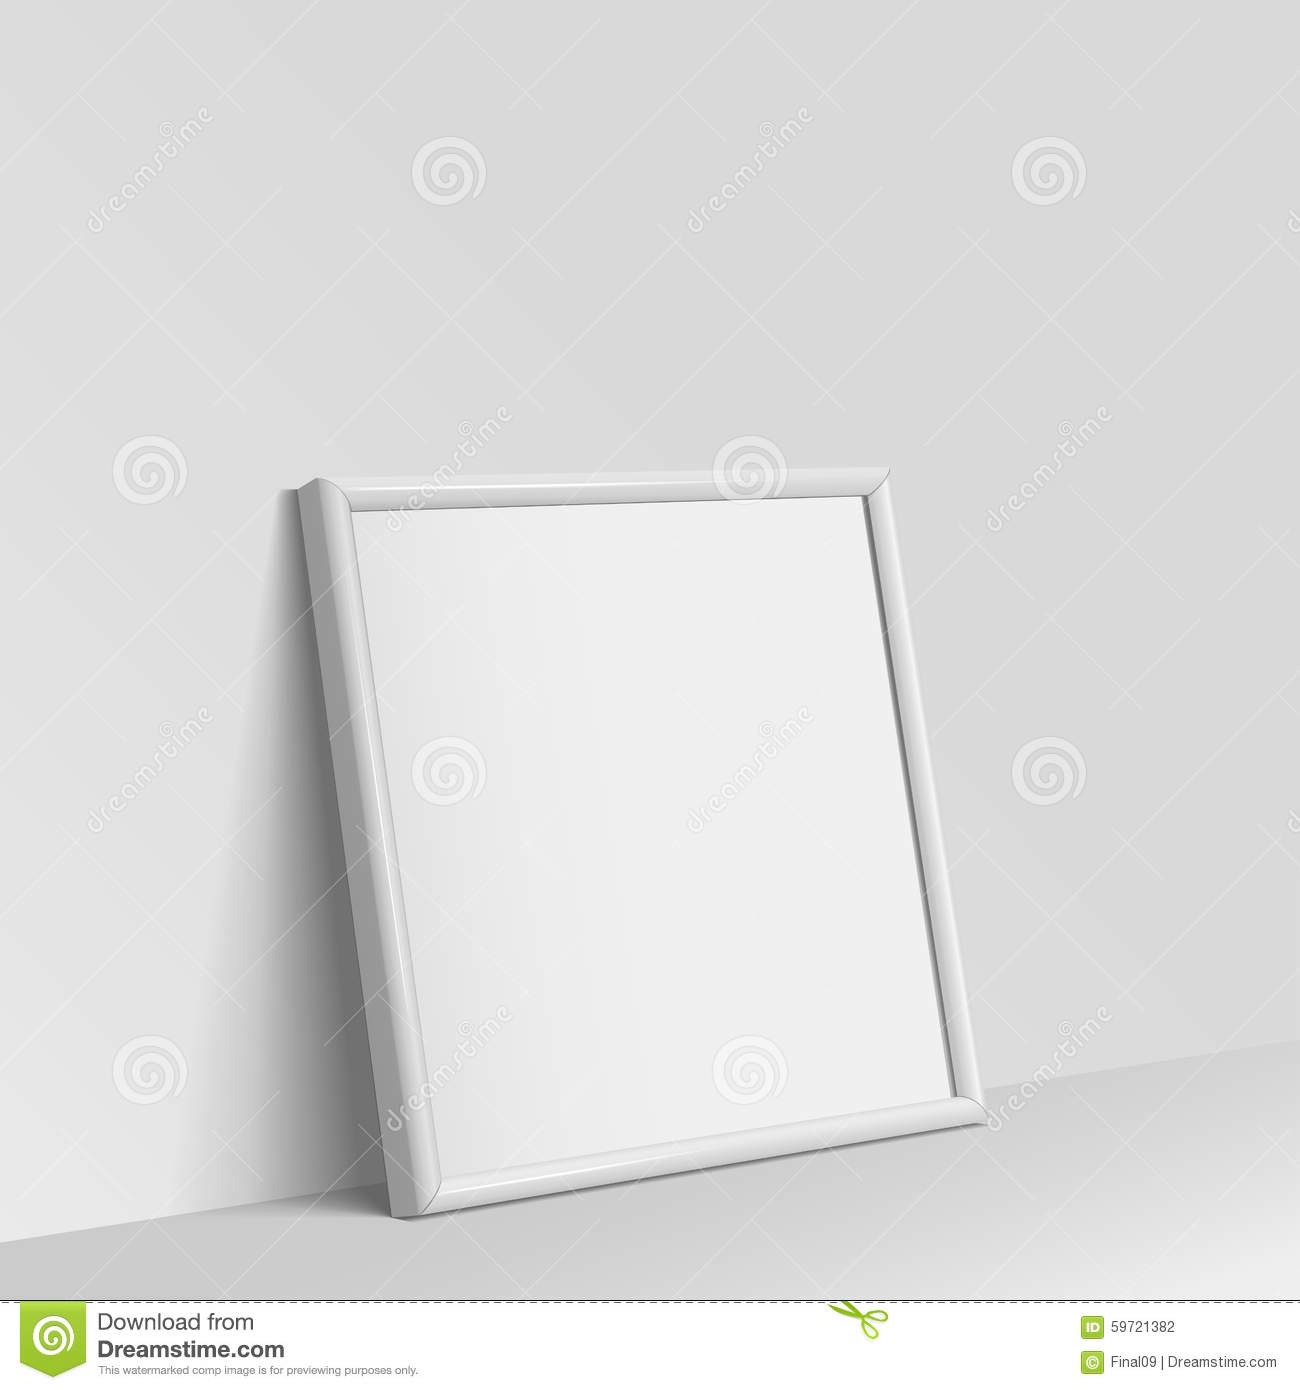 Realistic White Square Shape Frame For Paintings Stock Vector ...